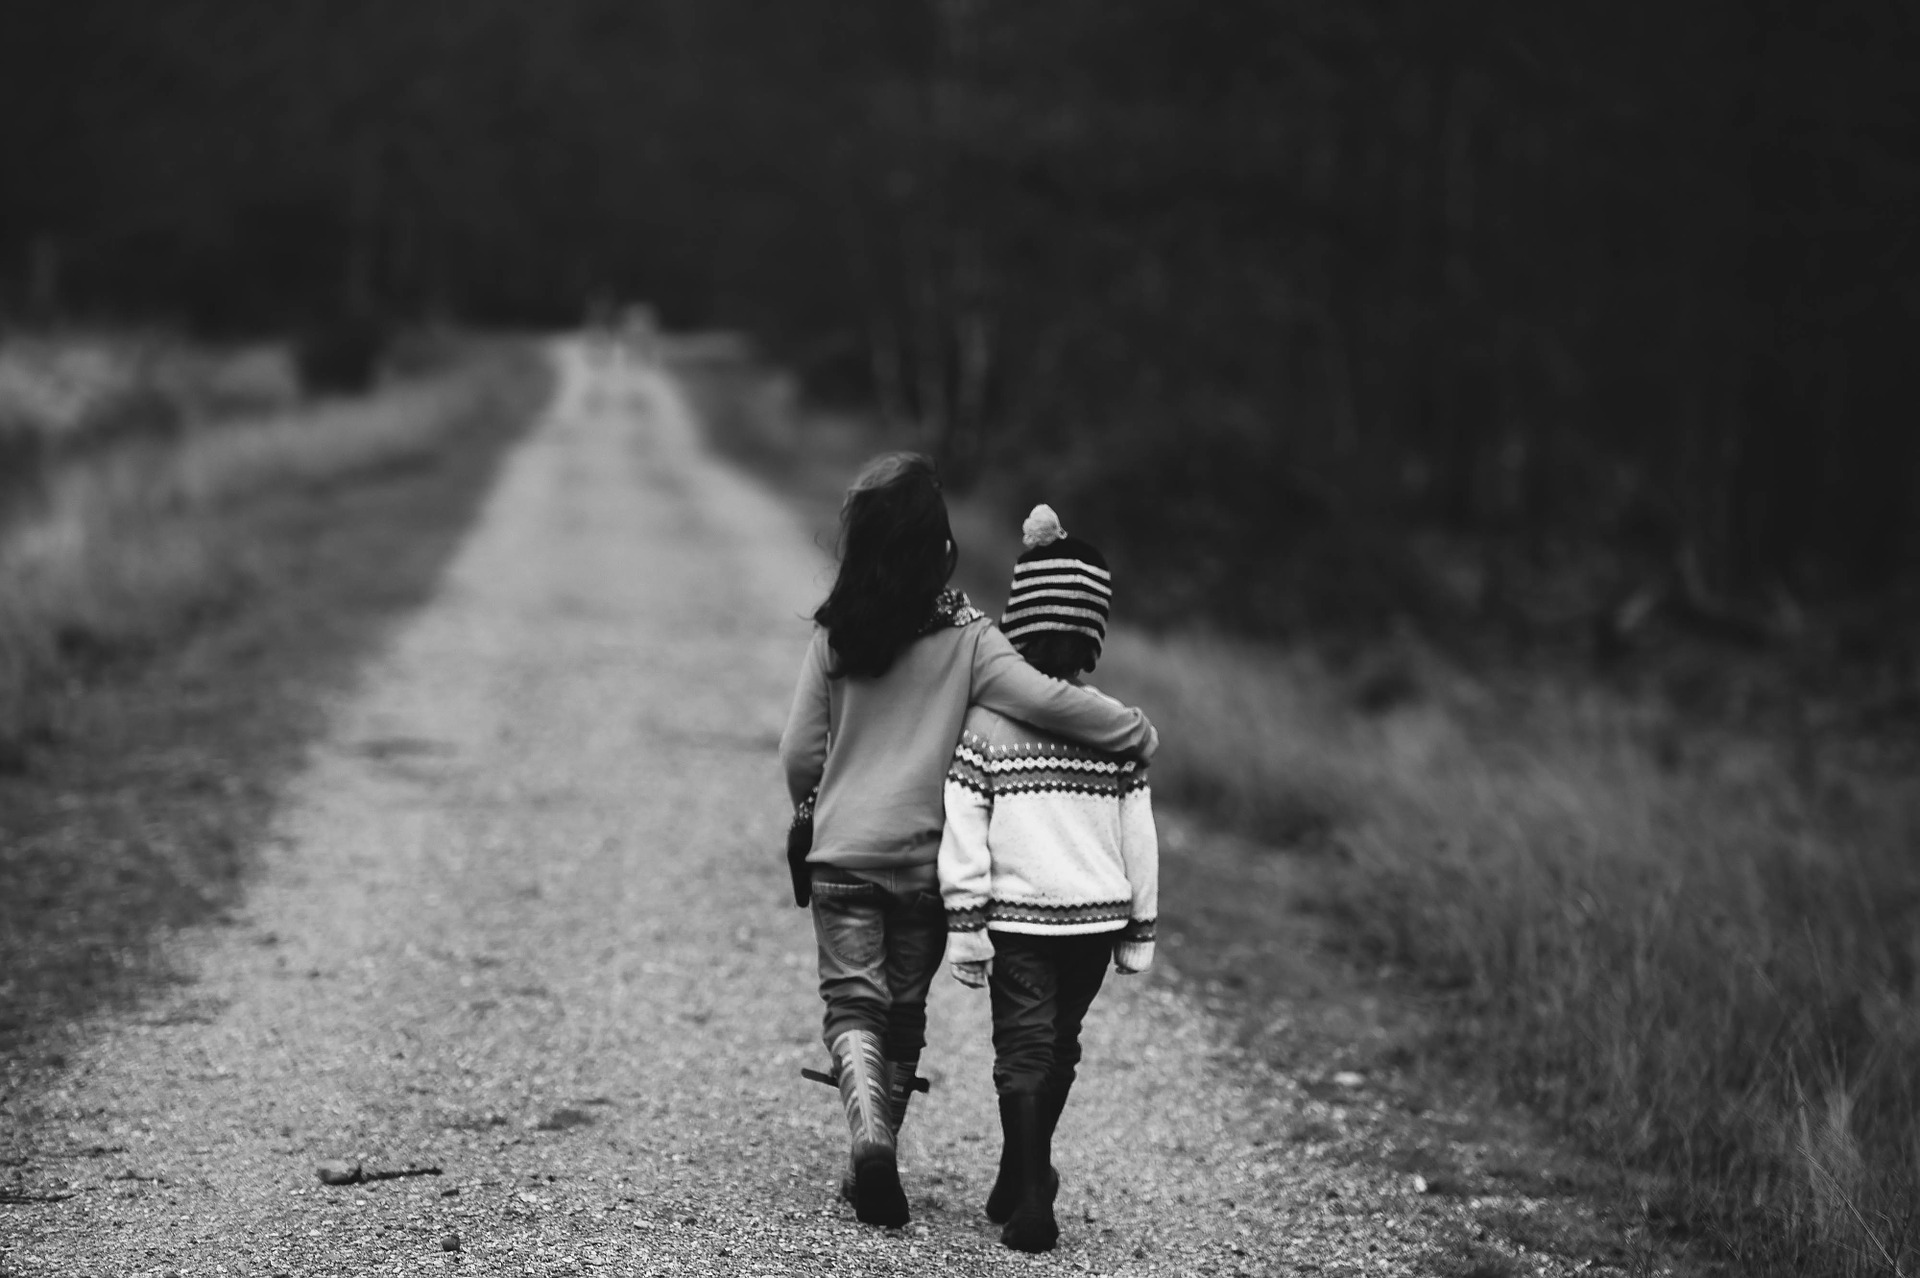 Make a small monthly recurring donation to your favorite nonprofit. Pictured: 2 children walking together.